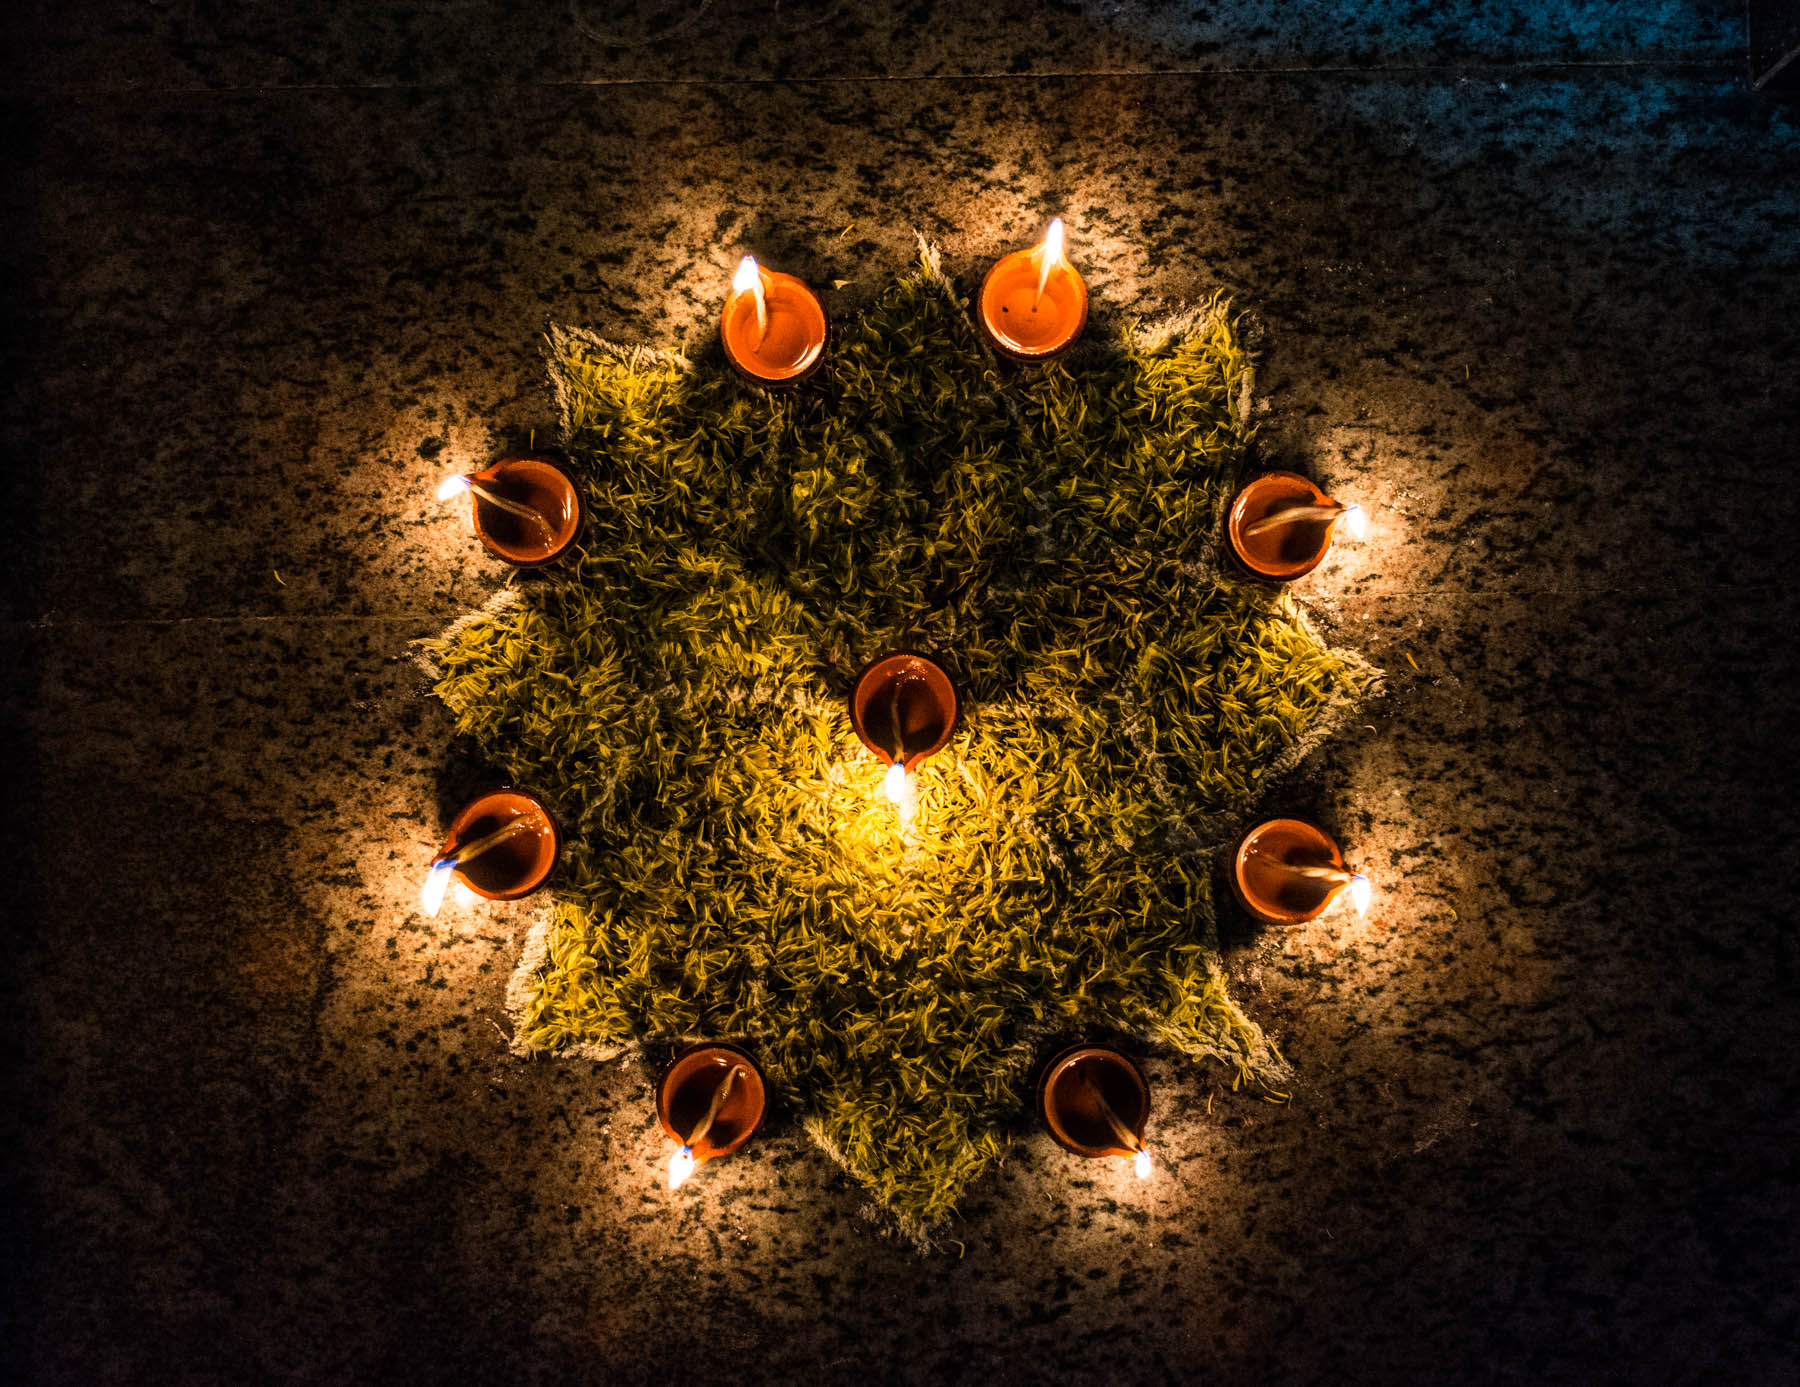 A pattern of lights during Diwali in Chennai, India - Lost With Purpose